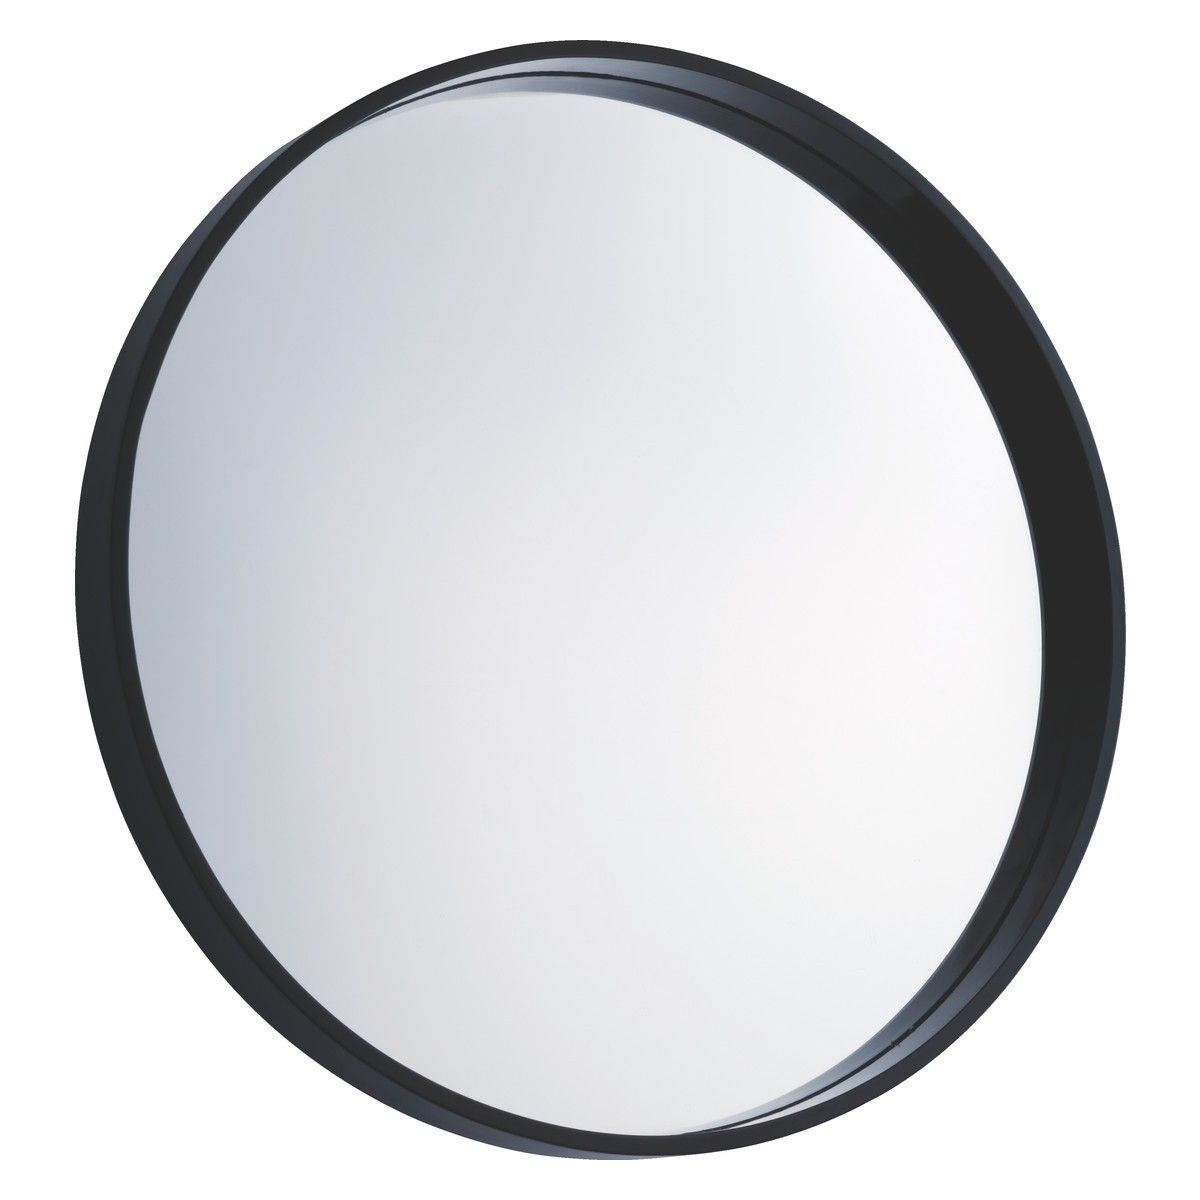 Aimee black high gloss round wall mirror dcm walls downstairs